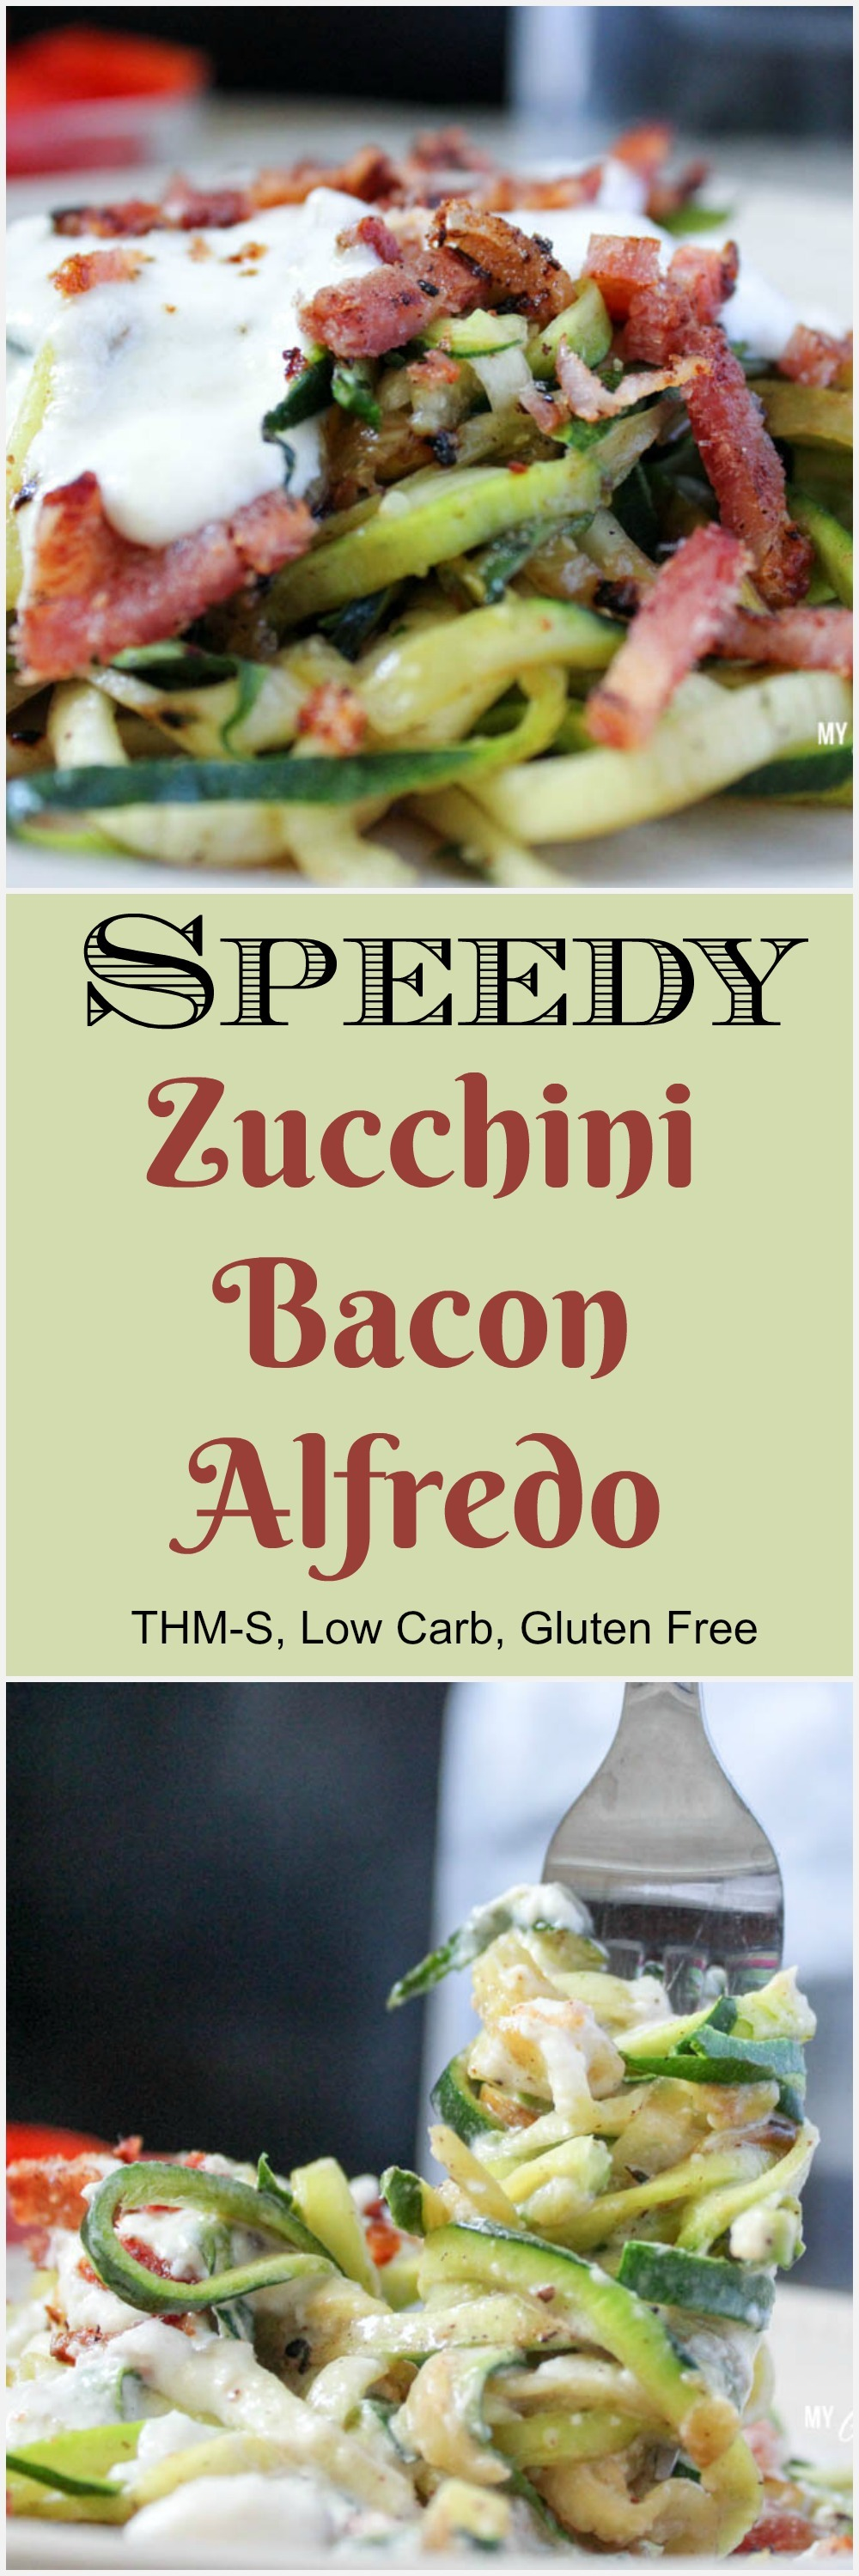 Speedy Zucchini Bacon Alfredo (THM-S, Low Carb)